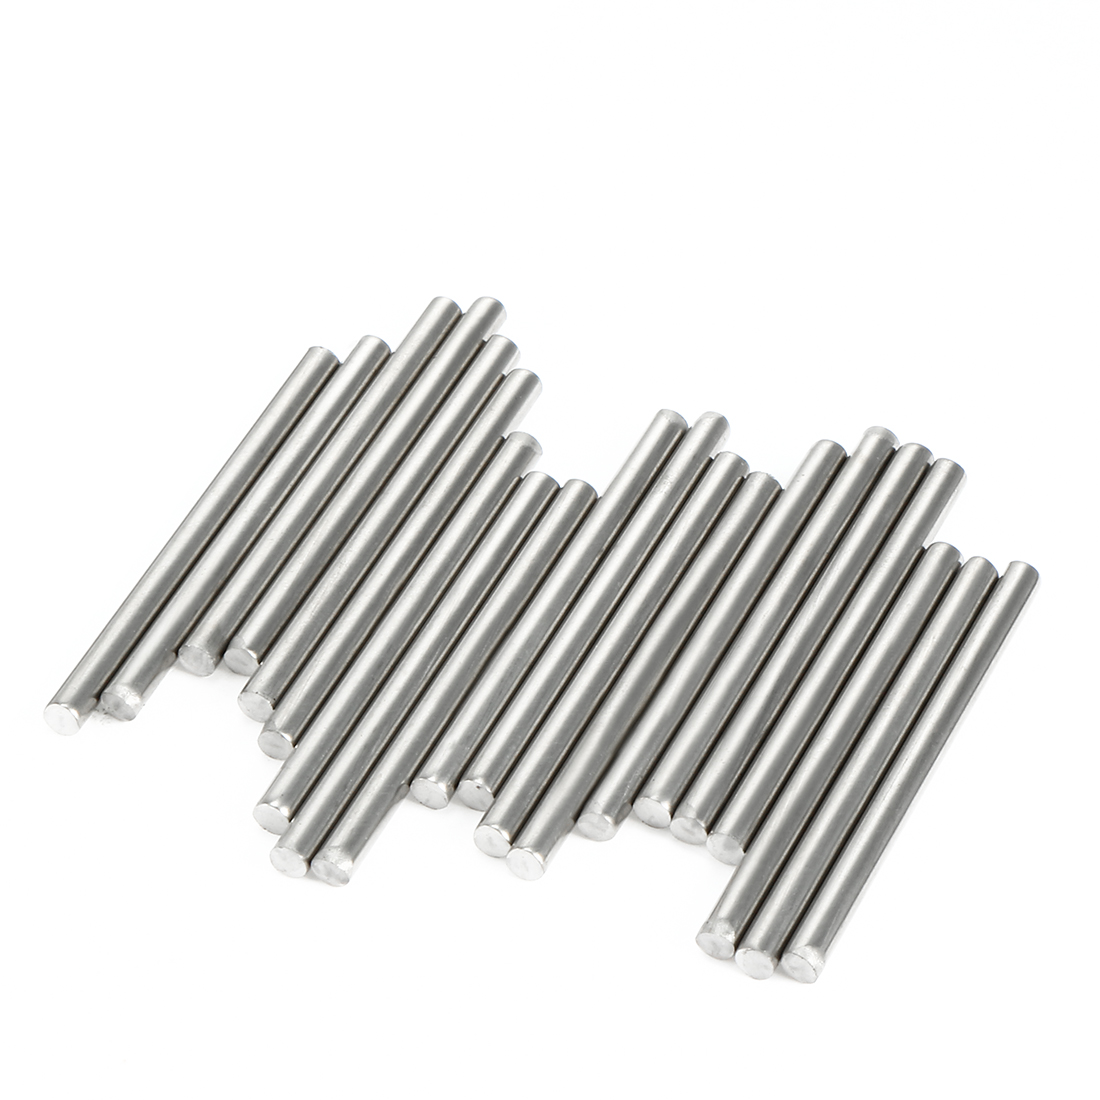 20pcs Round Shaft Rods Axles 304 Stainless Steel 2.5mm x 45mm for RC Toy Car